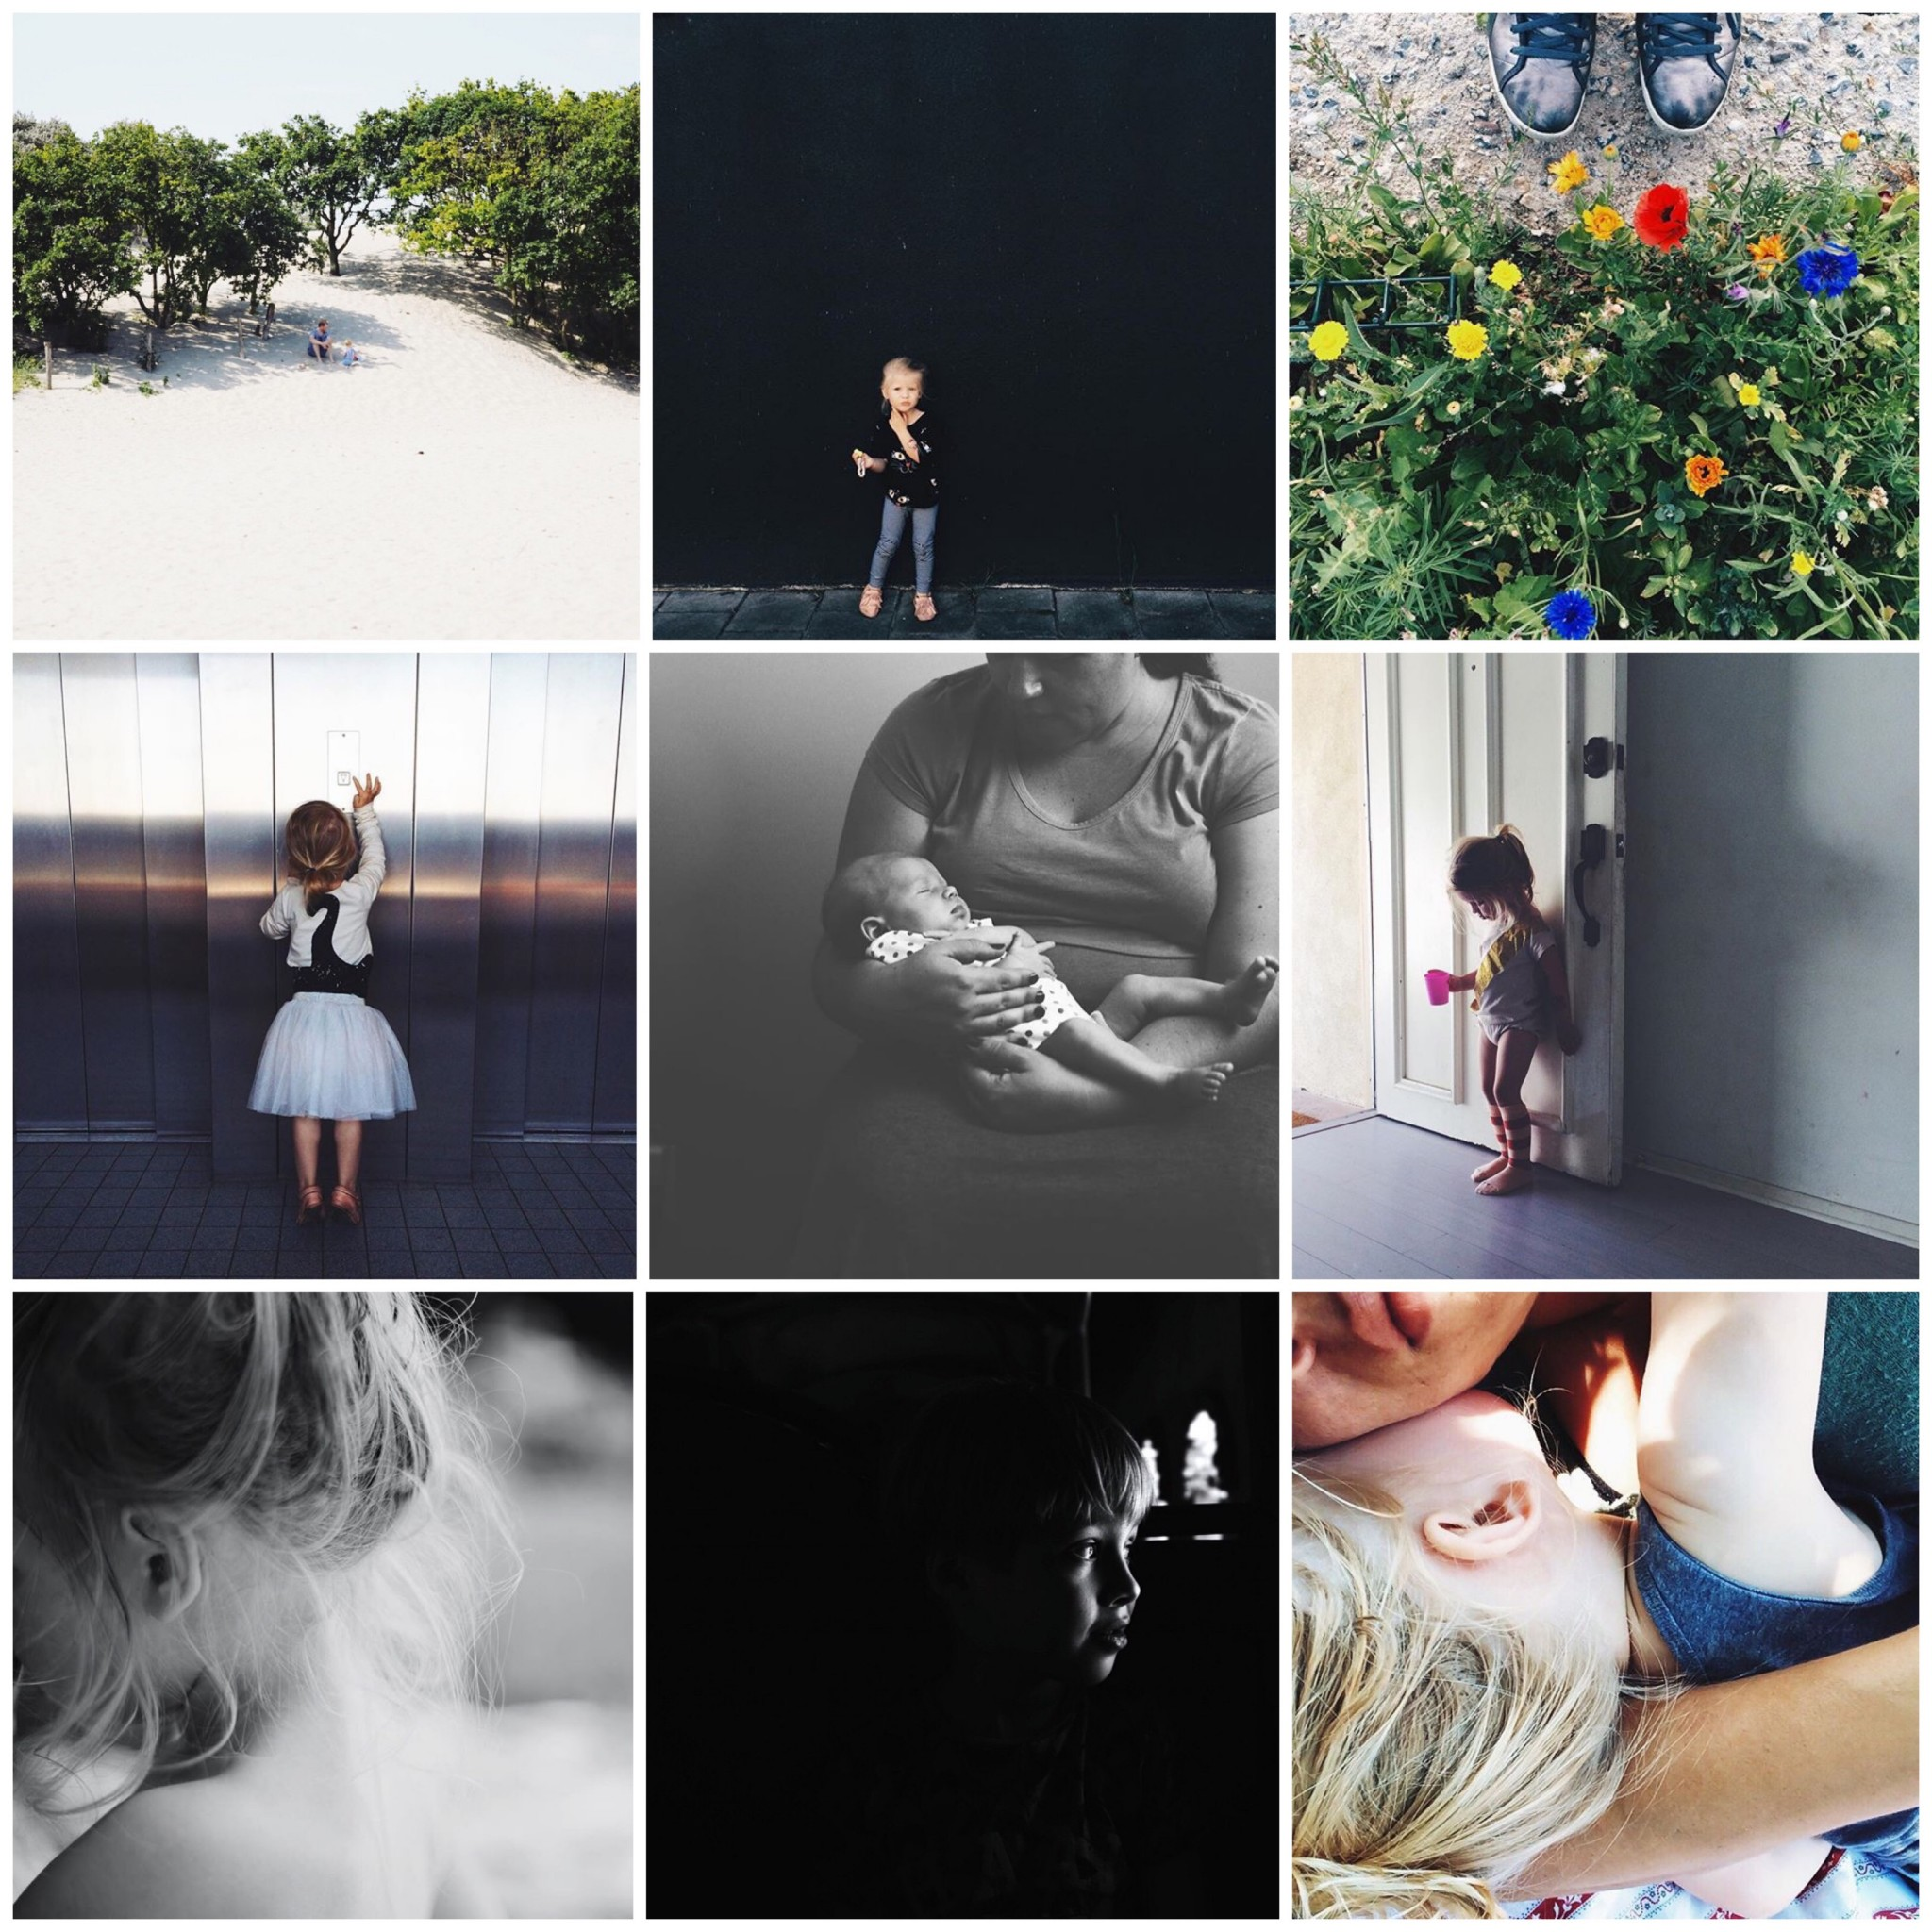 July on instagram @madebylon